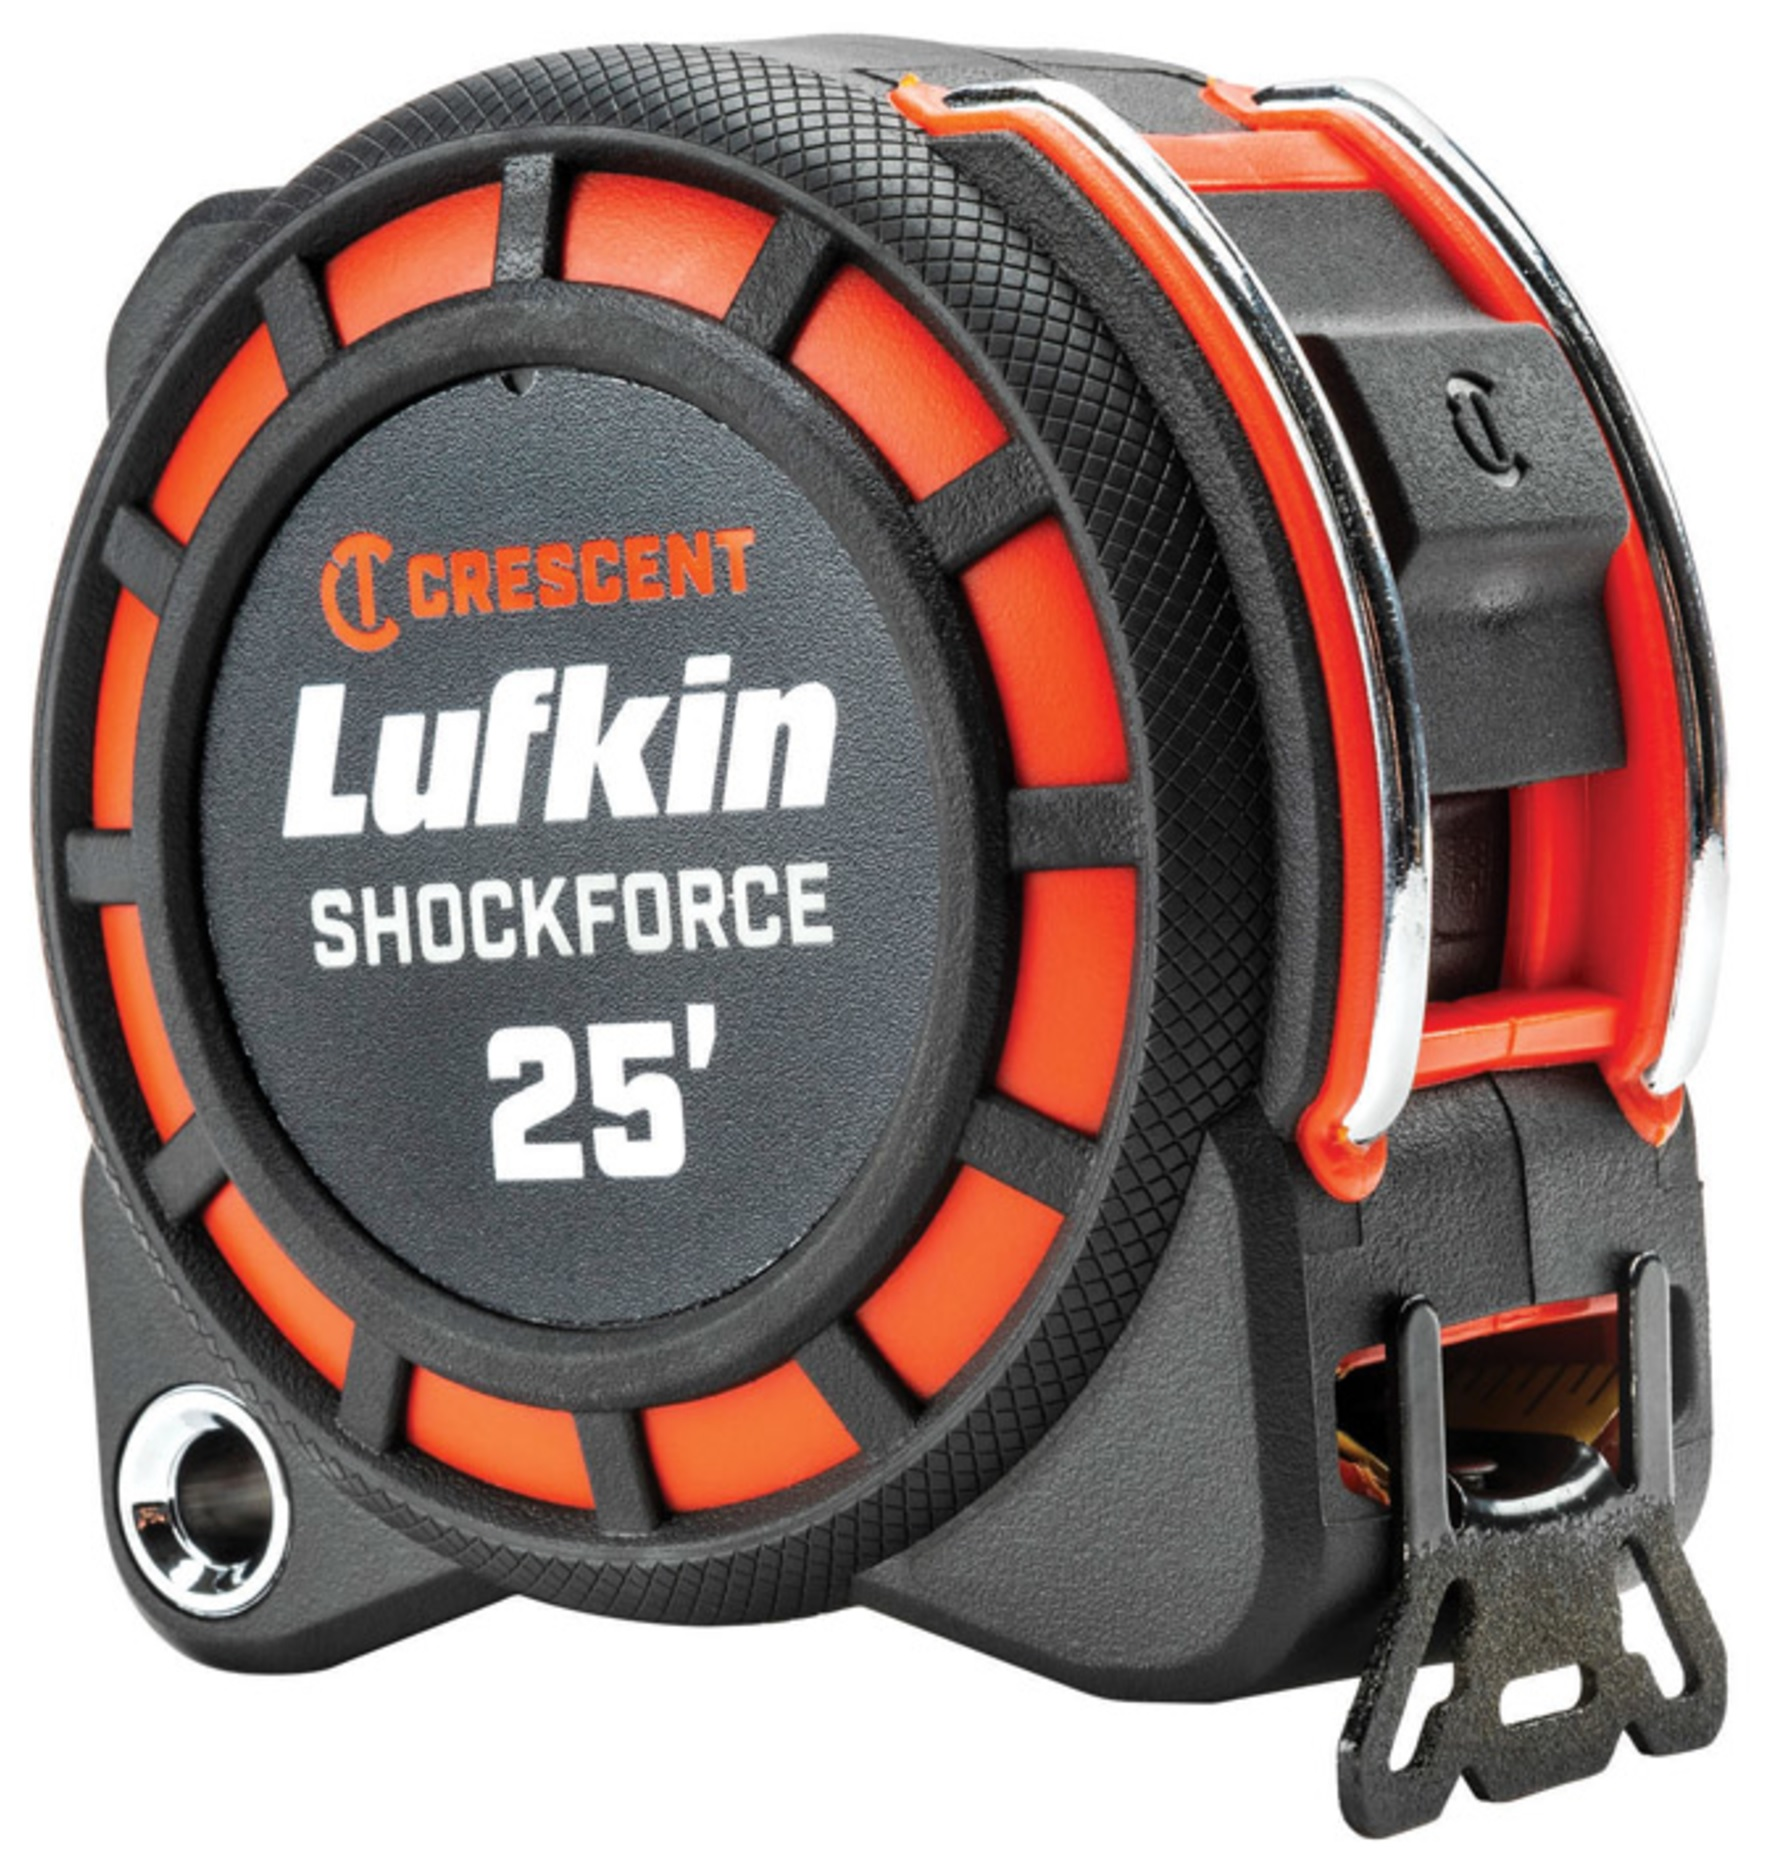 Crescent L1125 Lufkin ShockForce Tape Measure, Black/Red